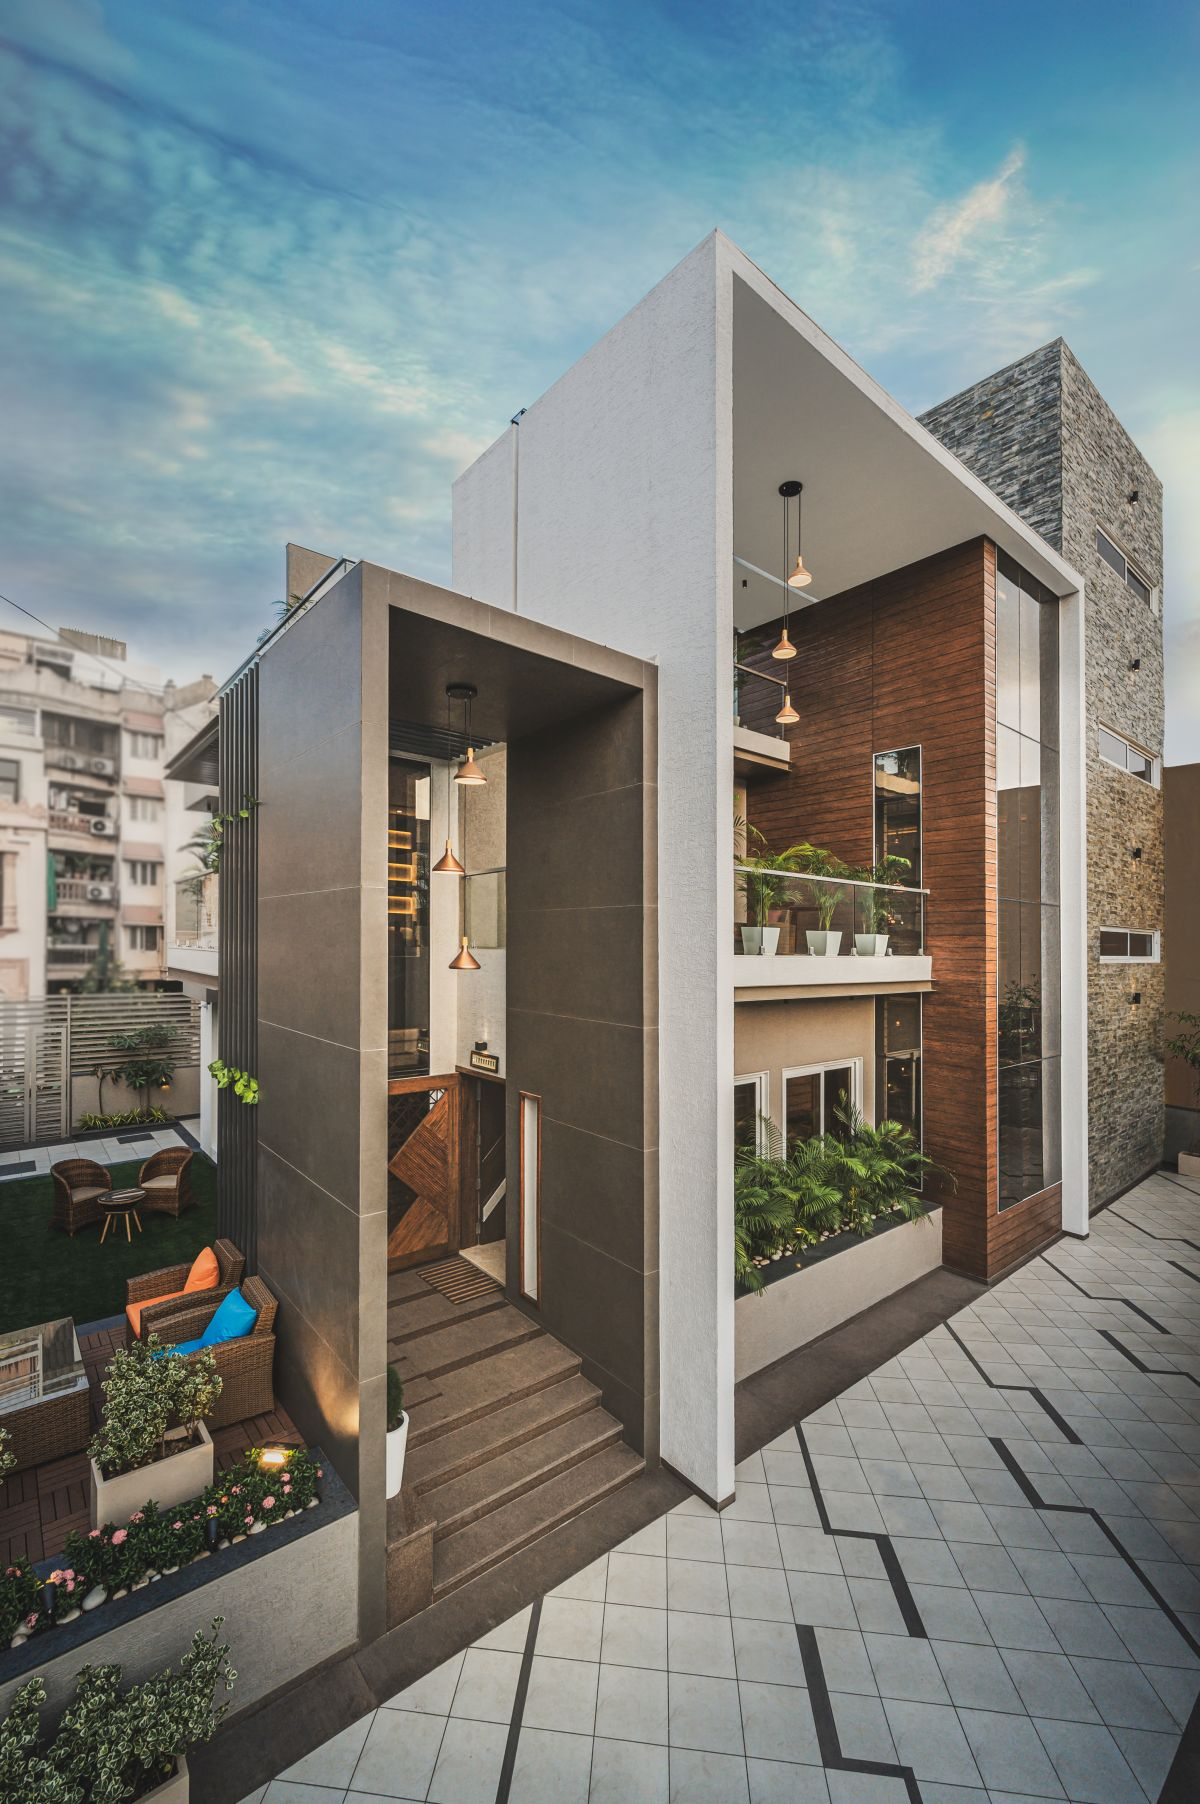 URBANFRAME HOUSE, at AHMEDABAD, by Shayona Consultant 1